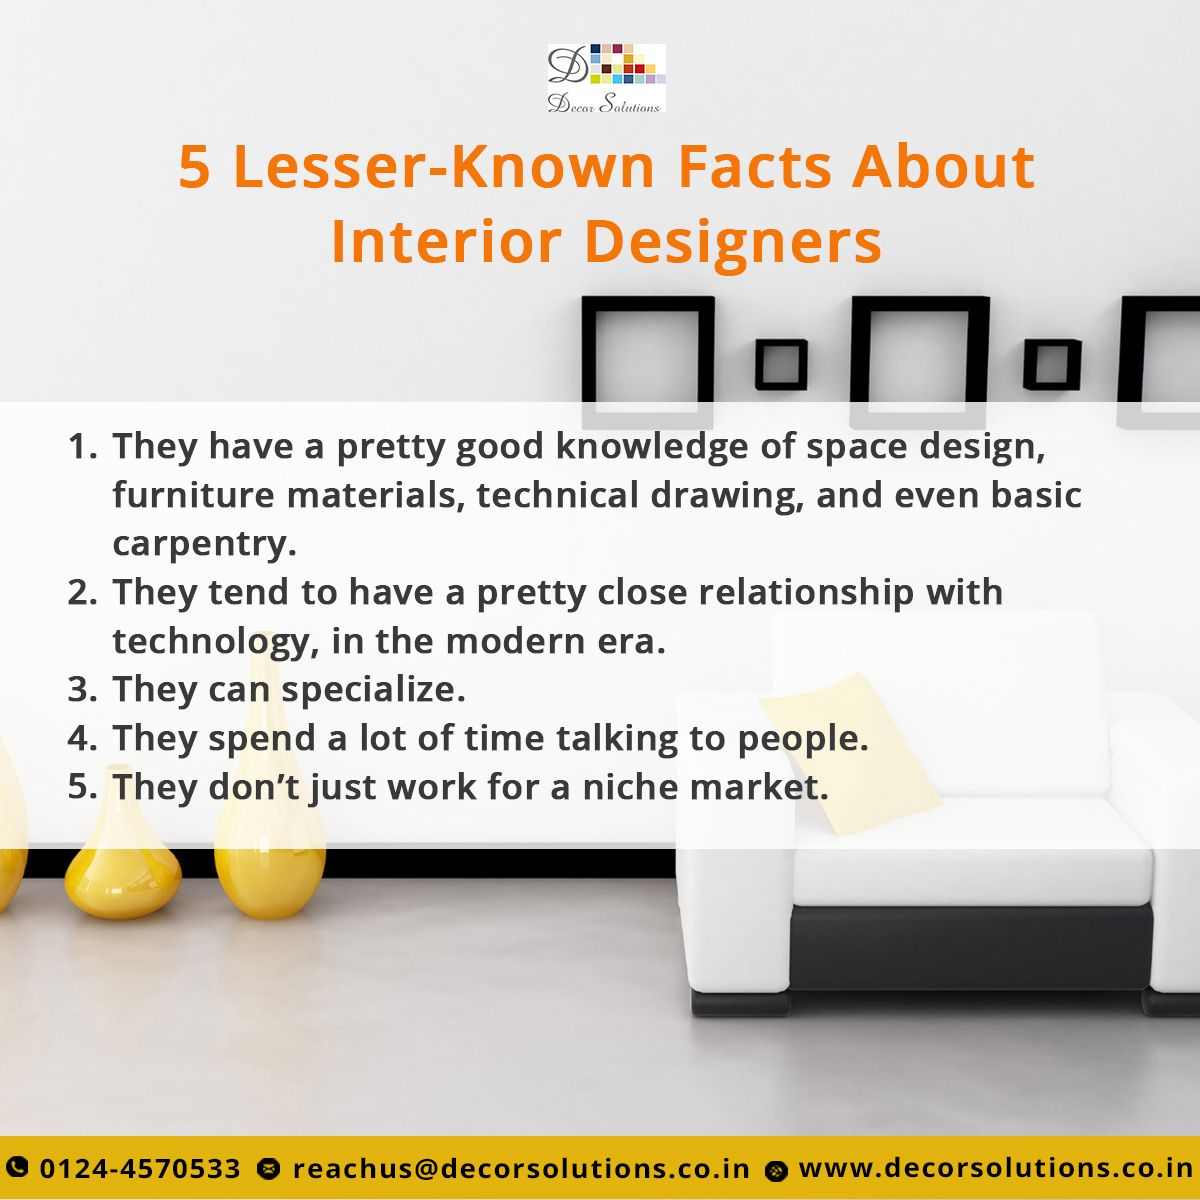 Genial Amazing Facts In The World Of Interior Designers! #DecorSolutions # InteriorDesigner #FridayFact #HappyWeekend